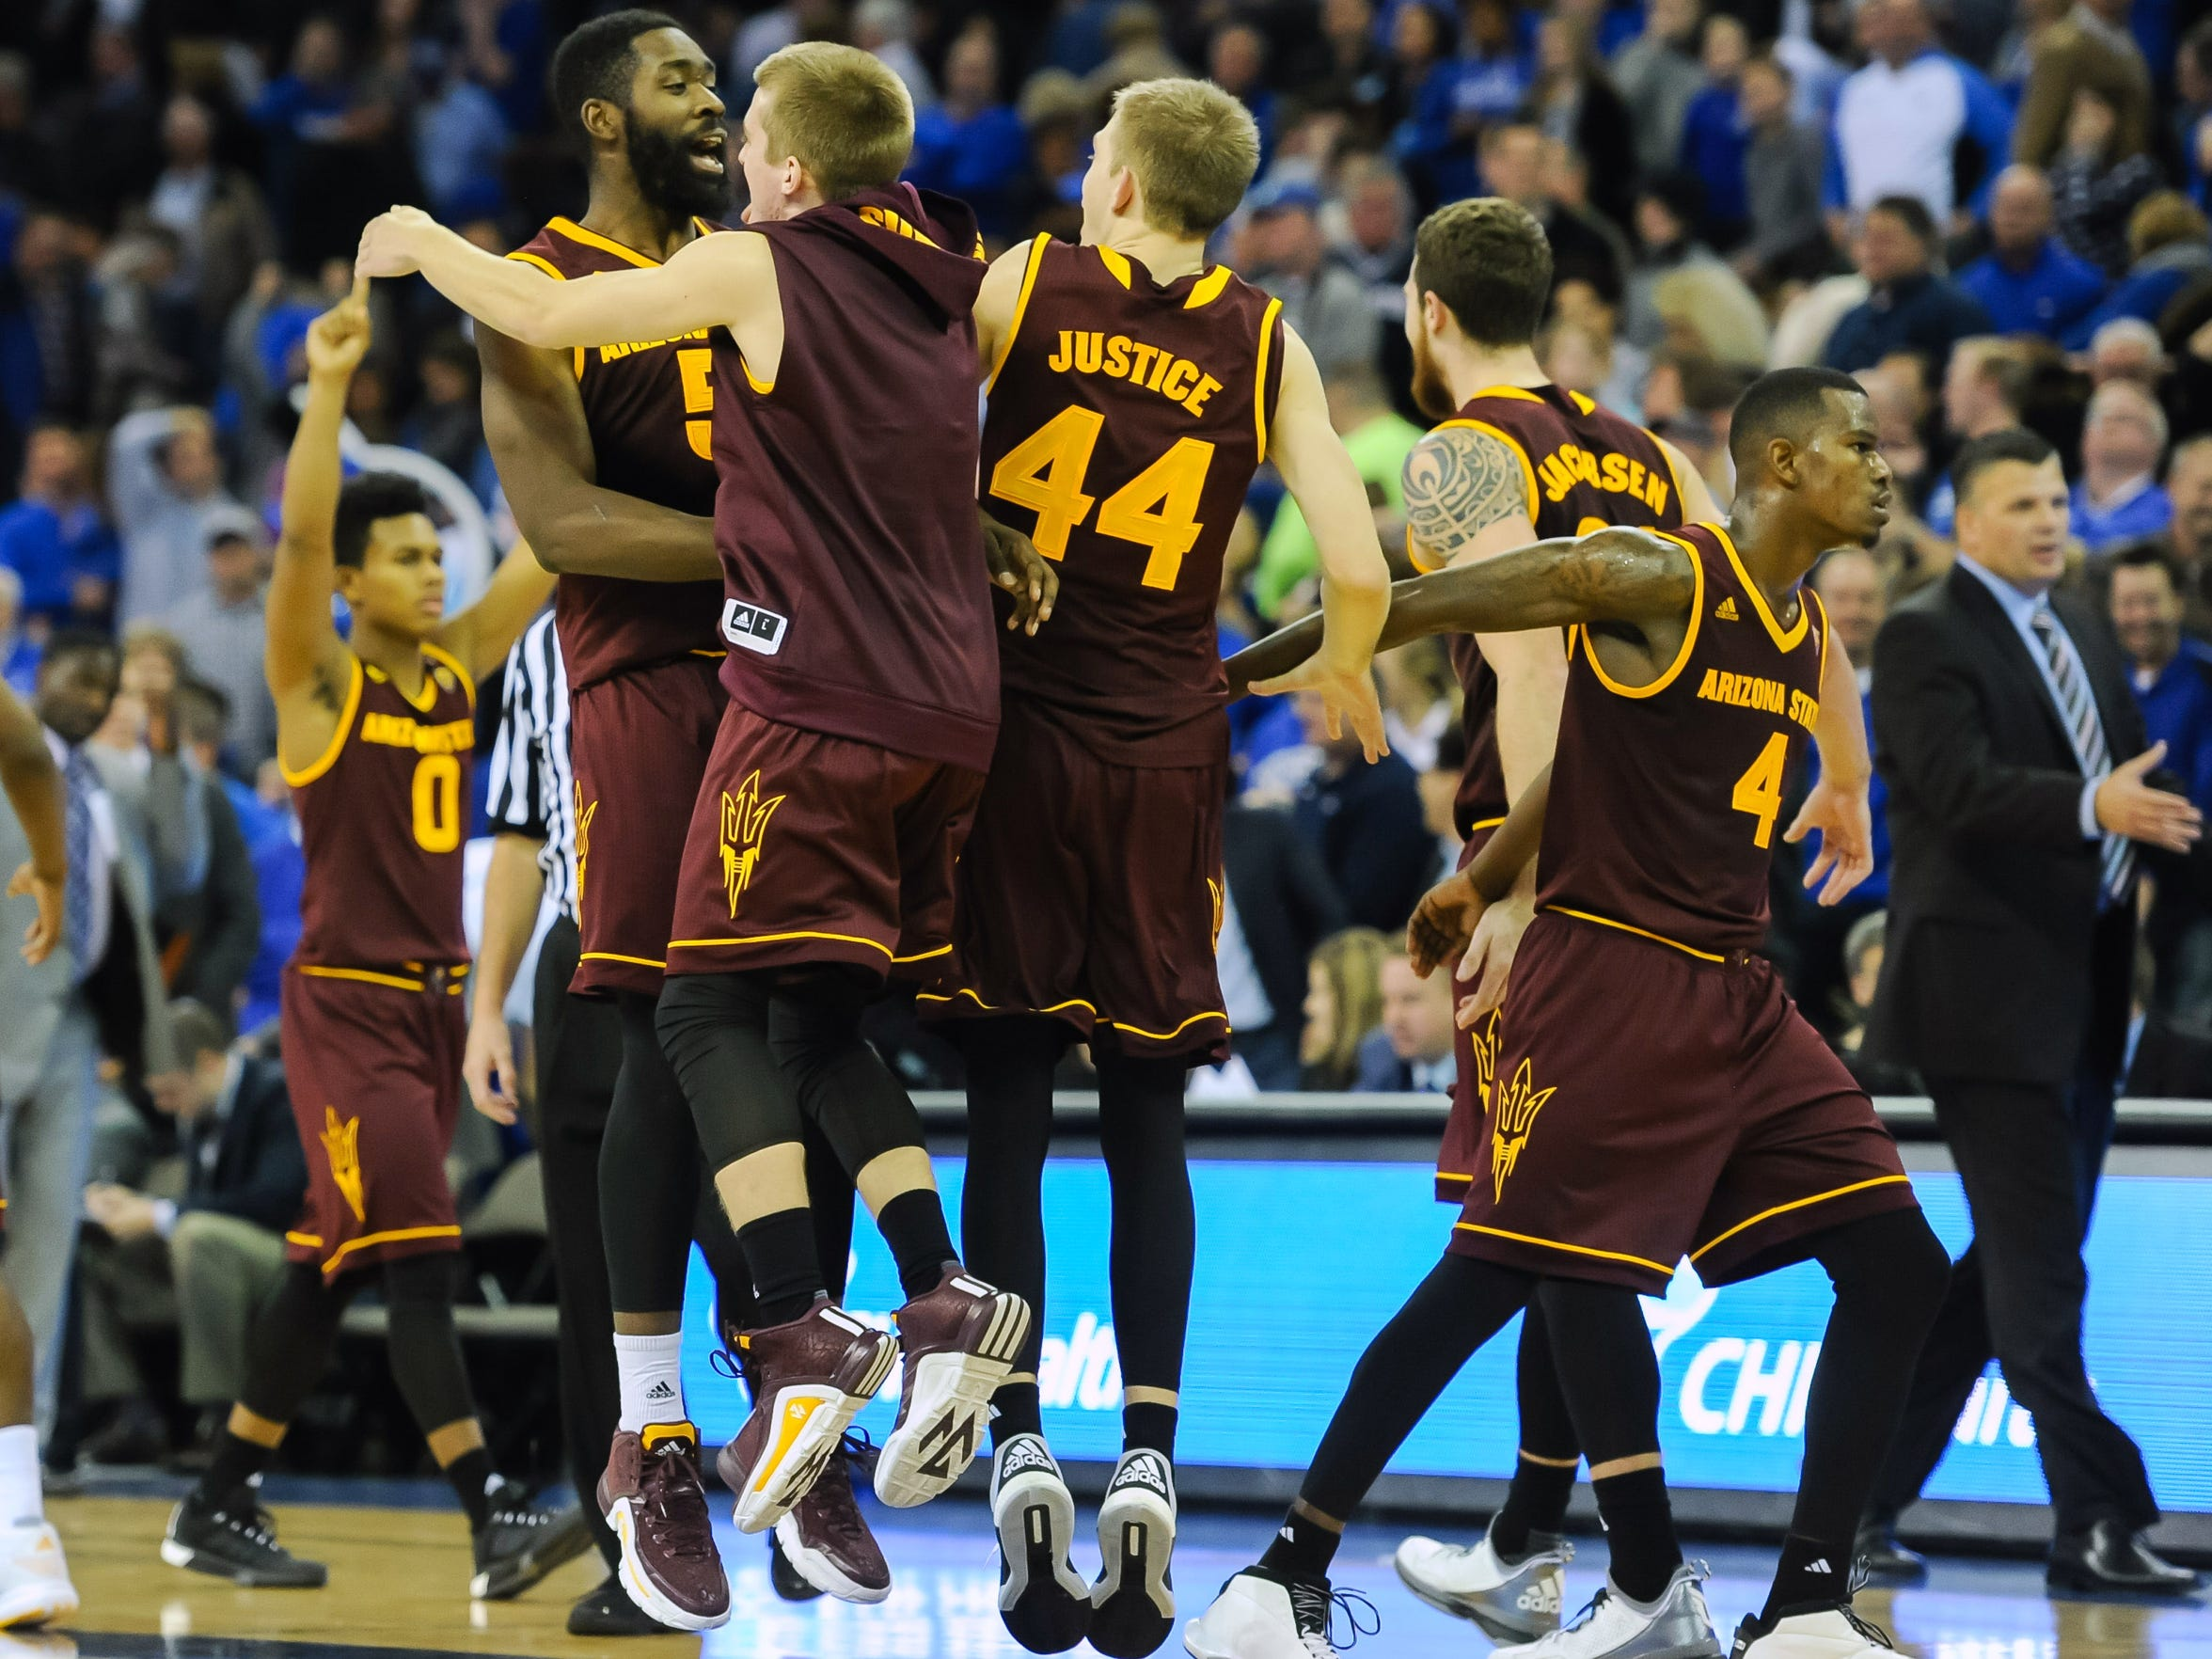 The Sun Devils celebrated after beating Creighton on